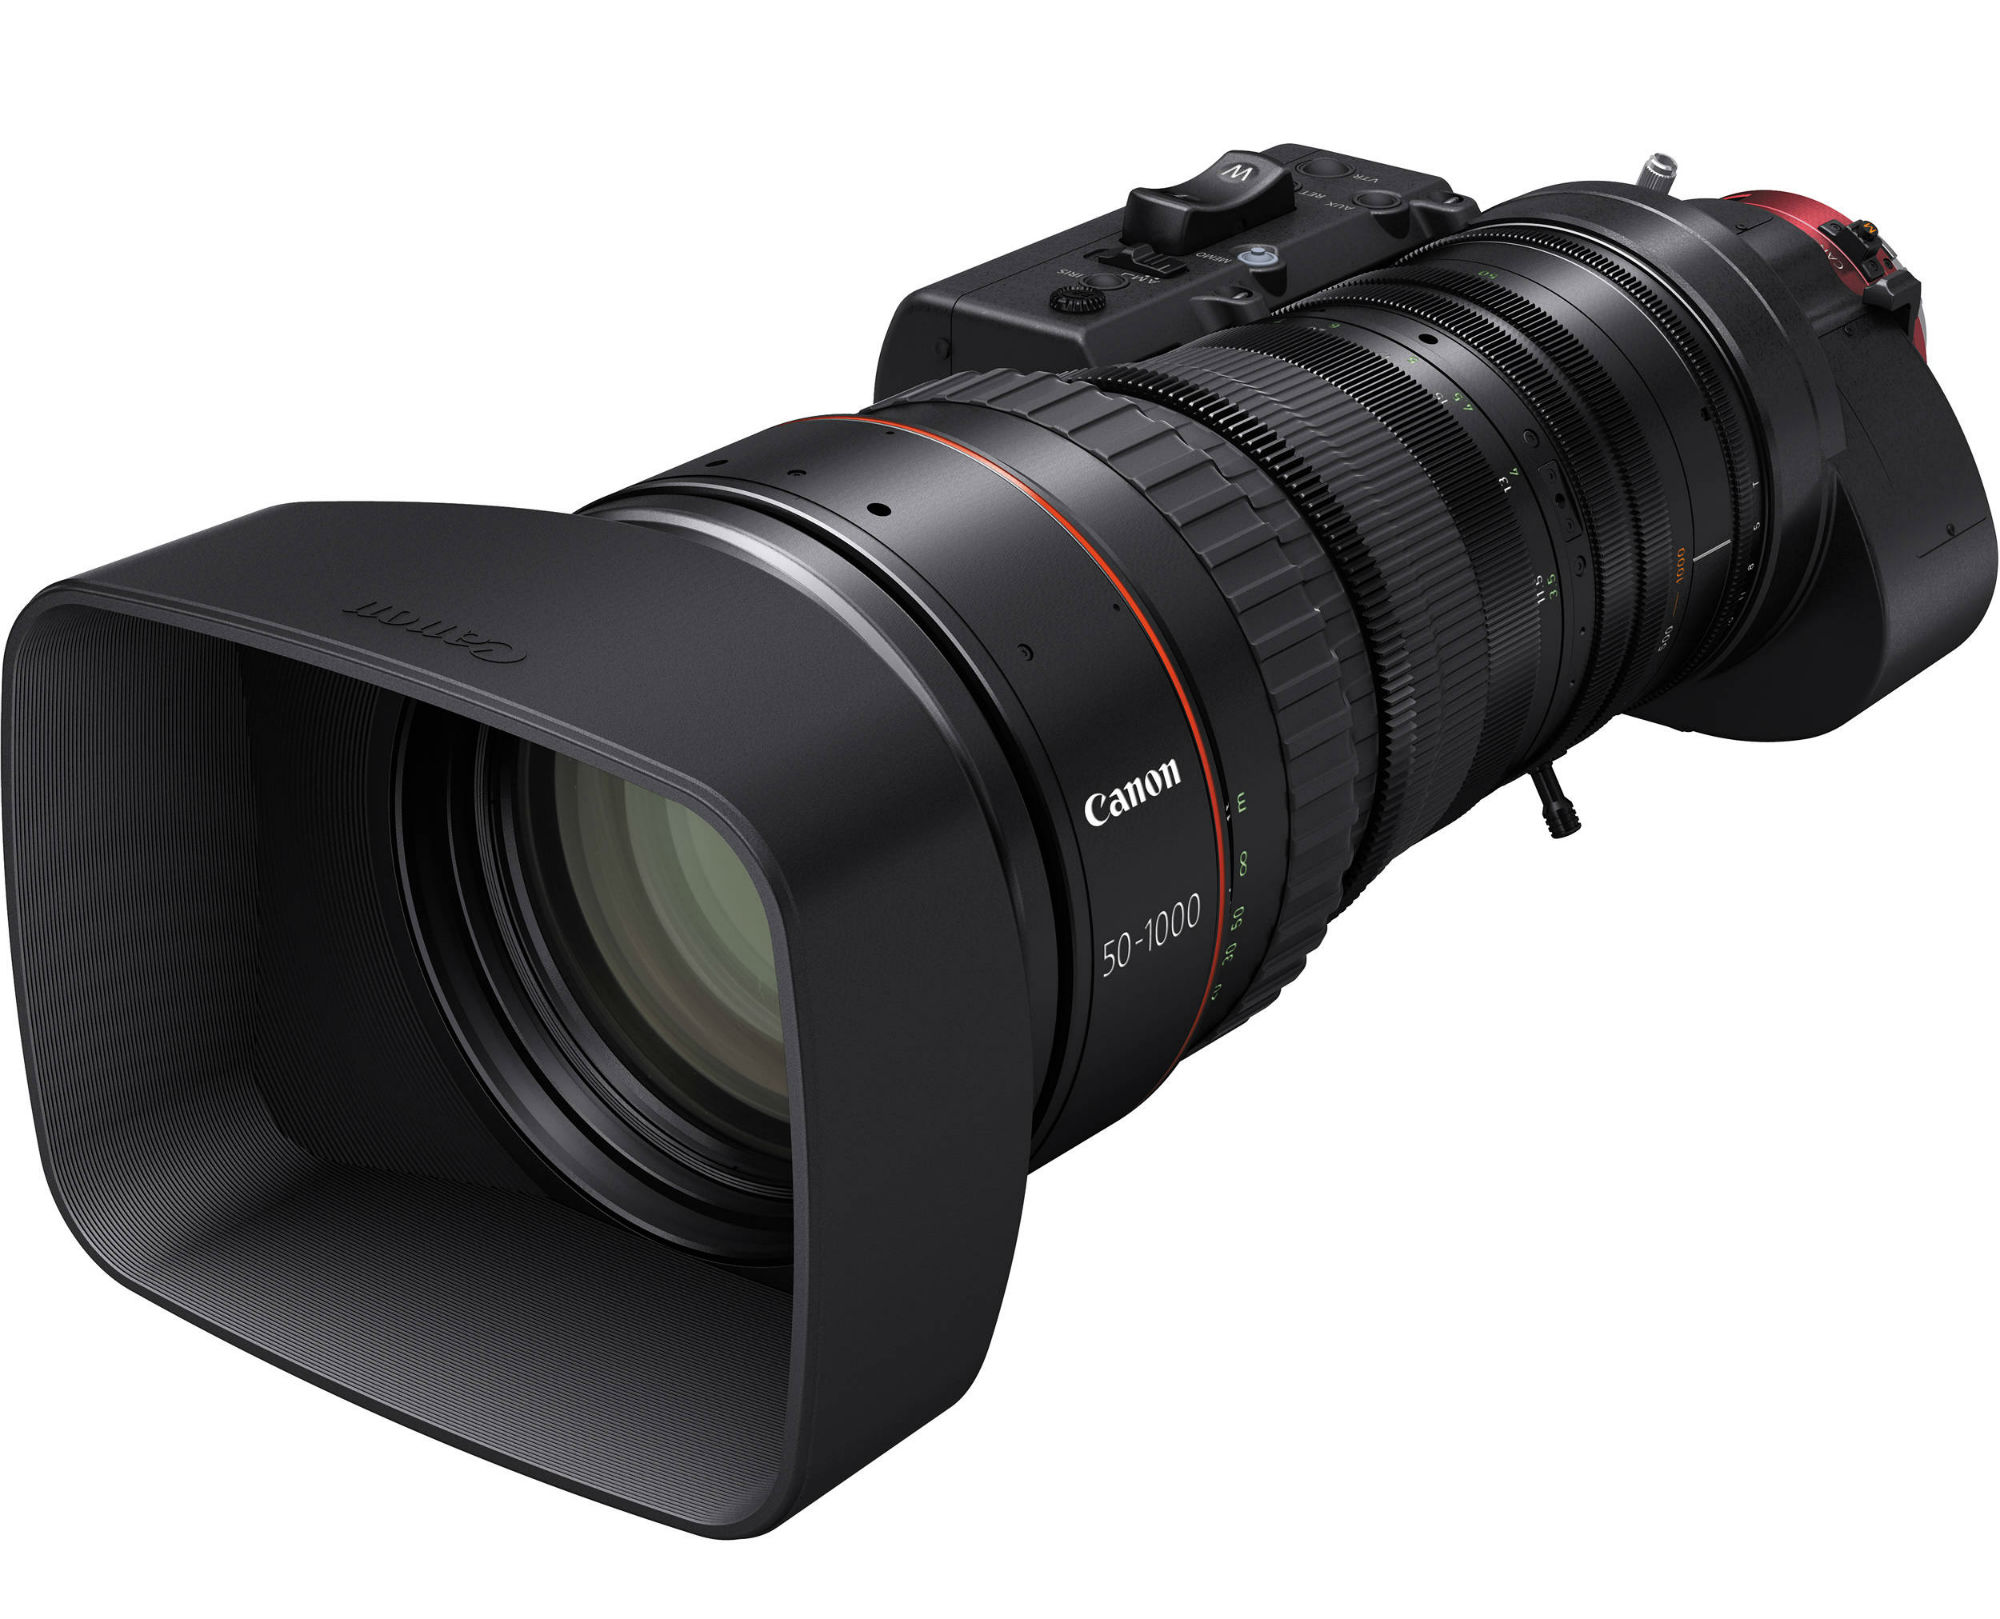 Canon Says 'Let's Do It!' and Creates a $70,000 50-1000mm Beast of a Lens